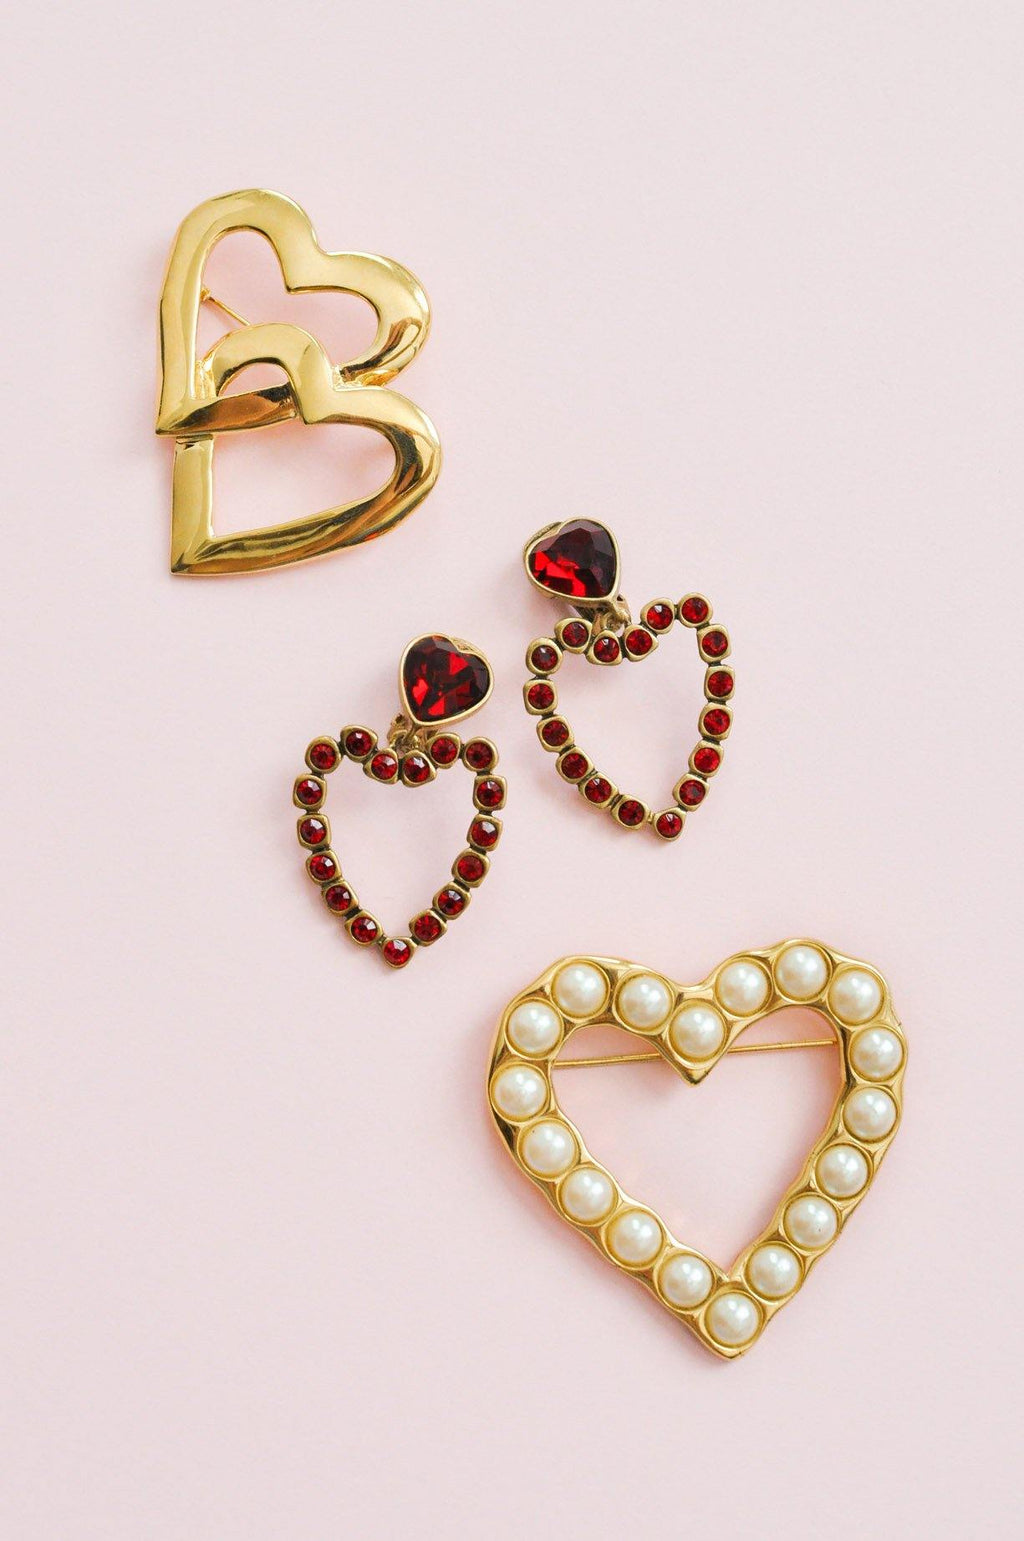 St. John Heart Brooch